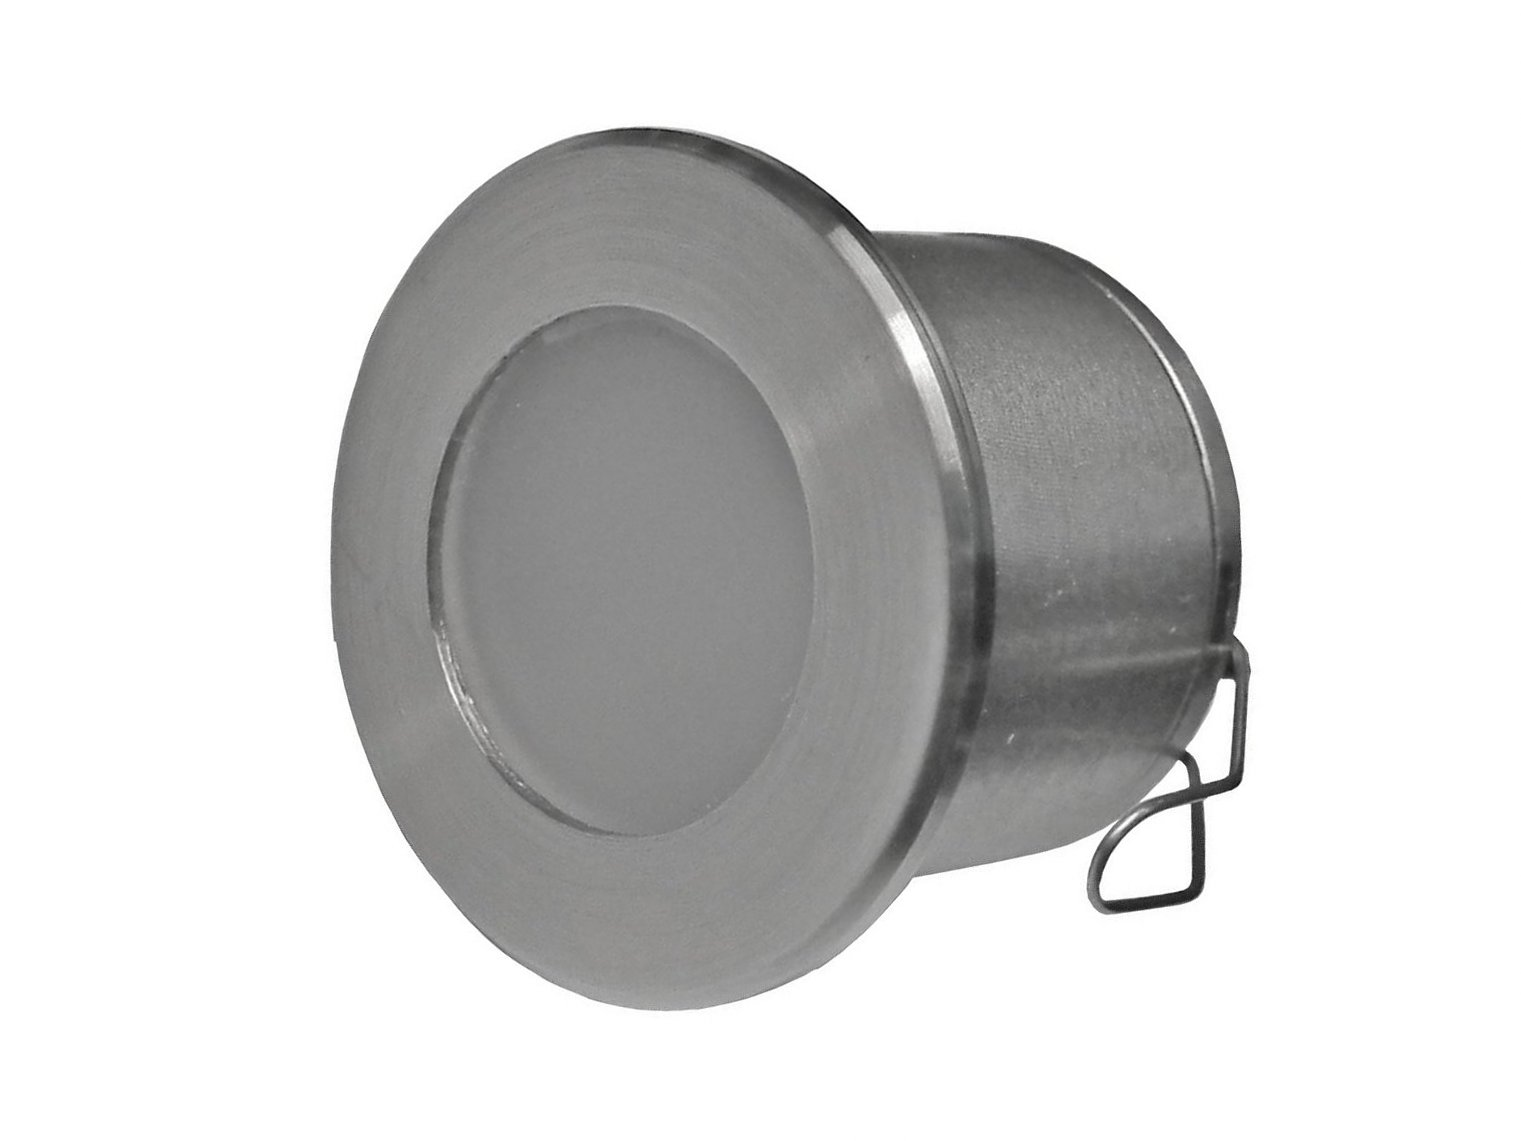 OPRAWA J - F - oko, Fitting, housing J - F - eye, Leuchte LED J - F - Auge, ПОТОЛОК светодиодный J - F - глаз, Pouzdro LED J - F - oční